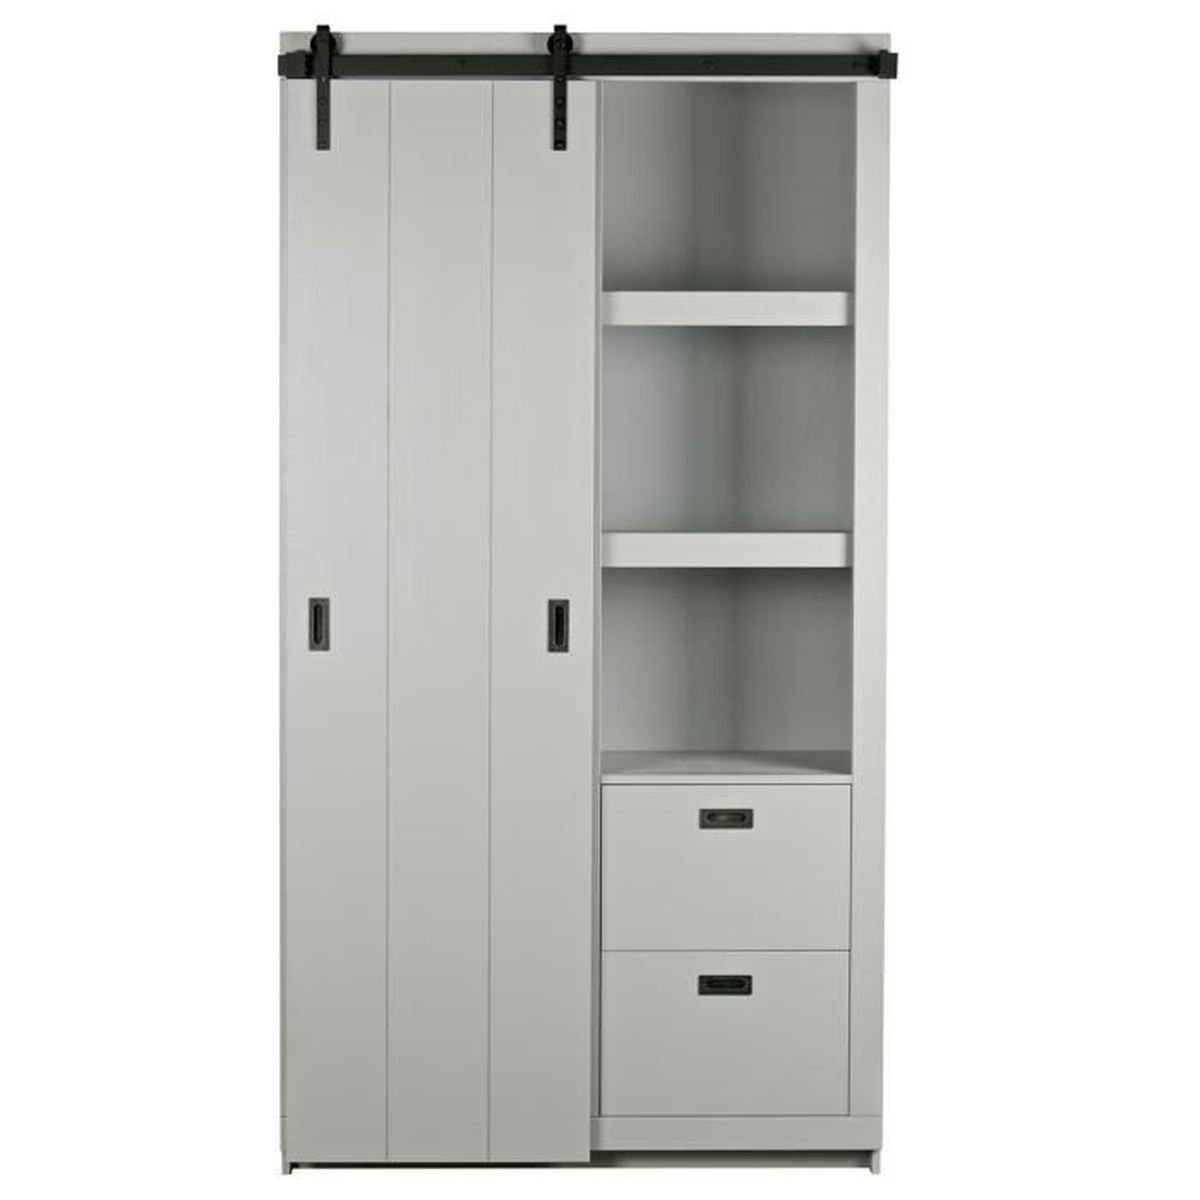 Armoire porte coulissante cdiscount auc with armoire porte coulissante cdiscount porte duentre for Armoire chambre adulte cdiscount